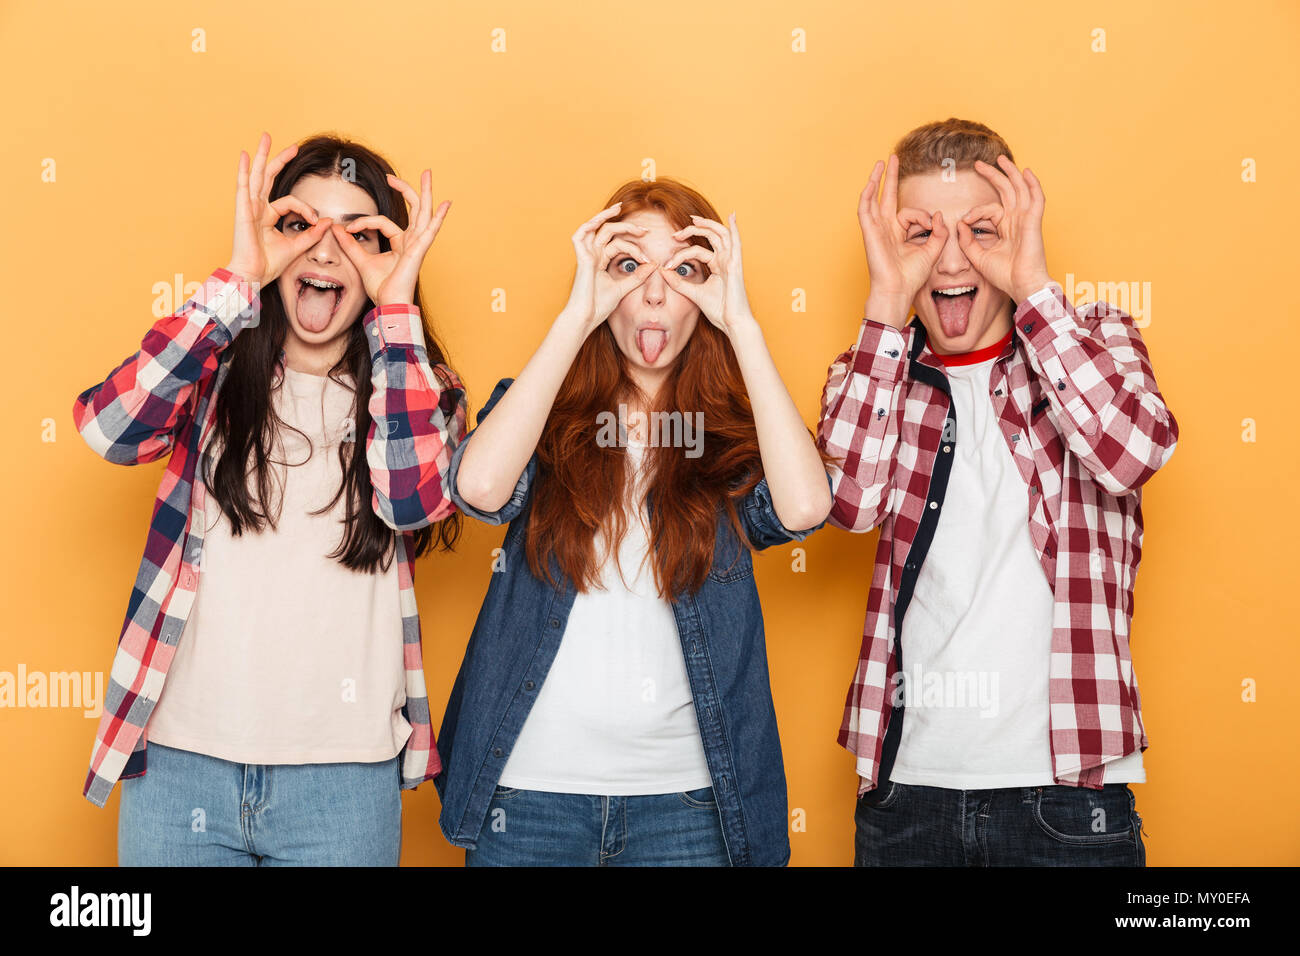 Group of funny school friends grimacing and having fun while standing together over yellow background - Stock Image